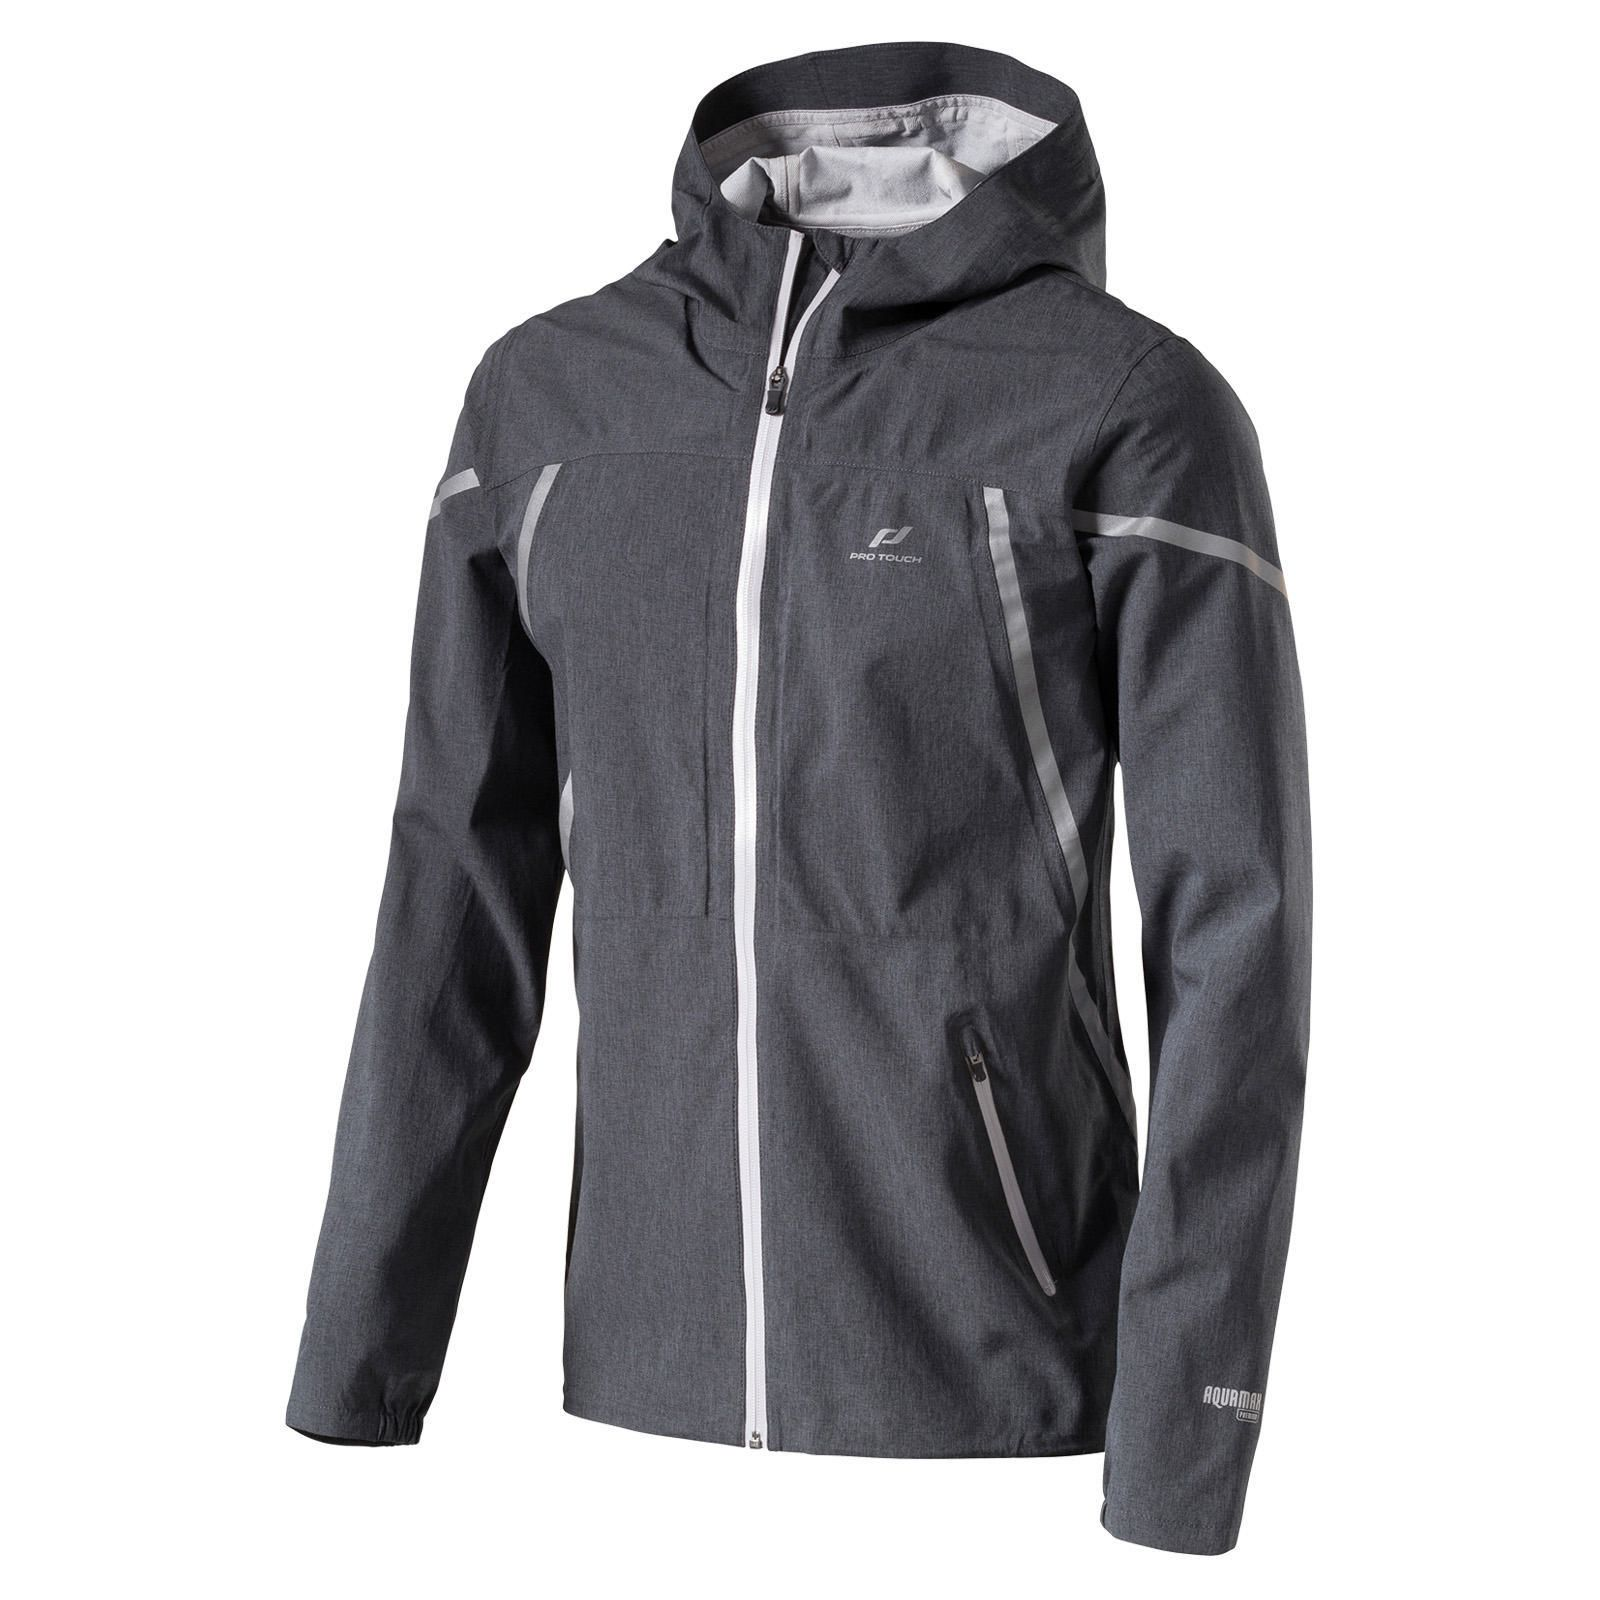 Pro Touch M's Pro Touch Munoz Taille S   Hommes